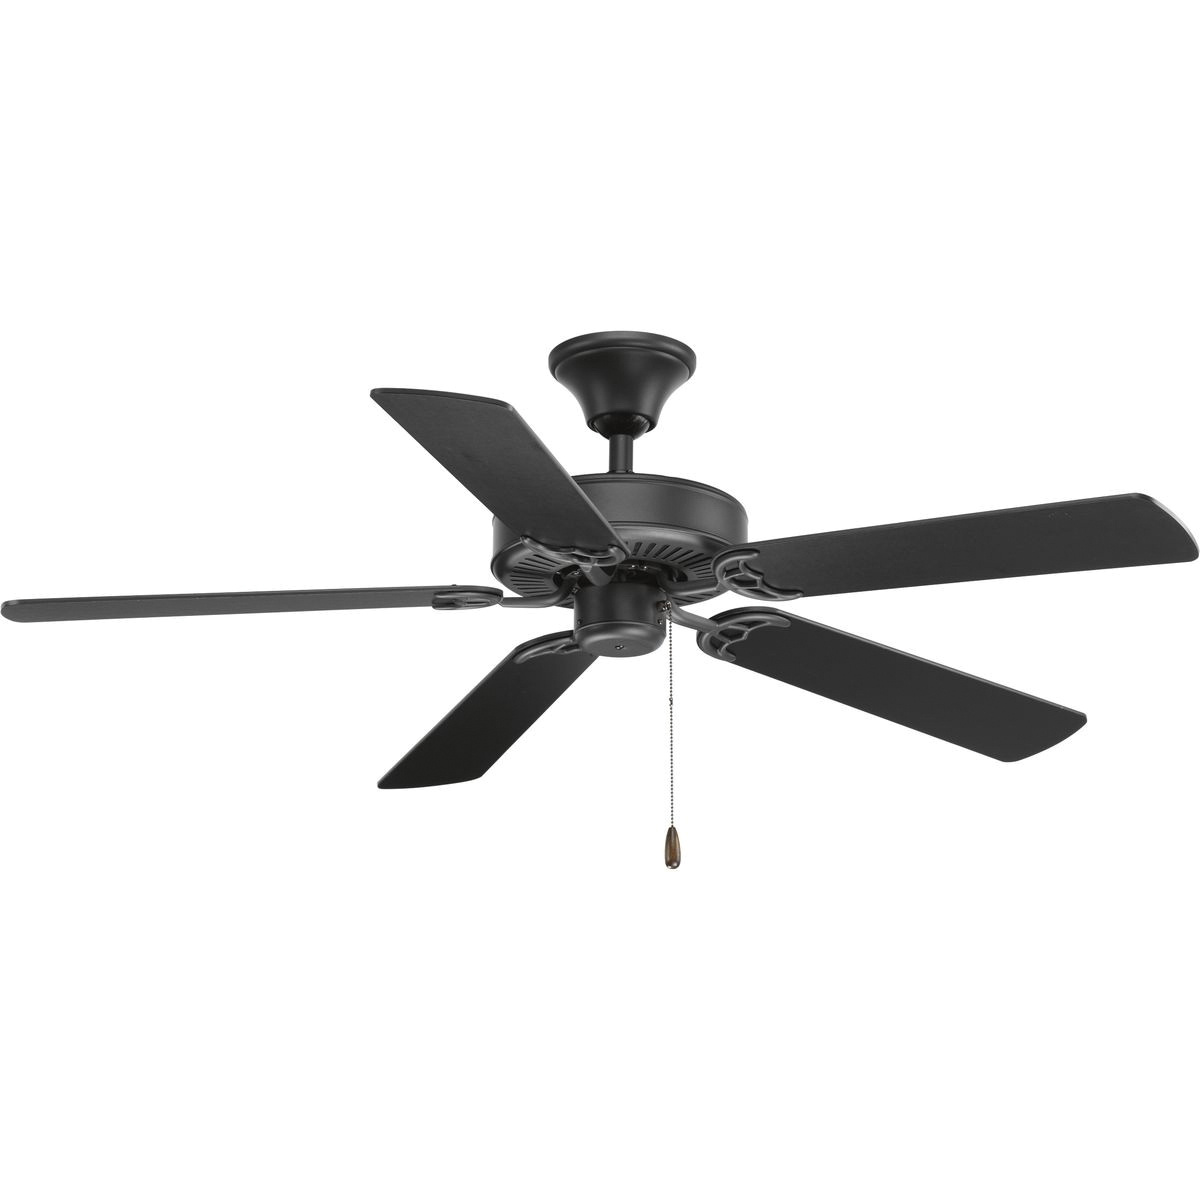 Progress Lighting P2501 143 Traditional Ceiling Fan 52 Inch 5 Blade 3 Sd Graphite Airpro